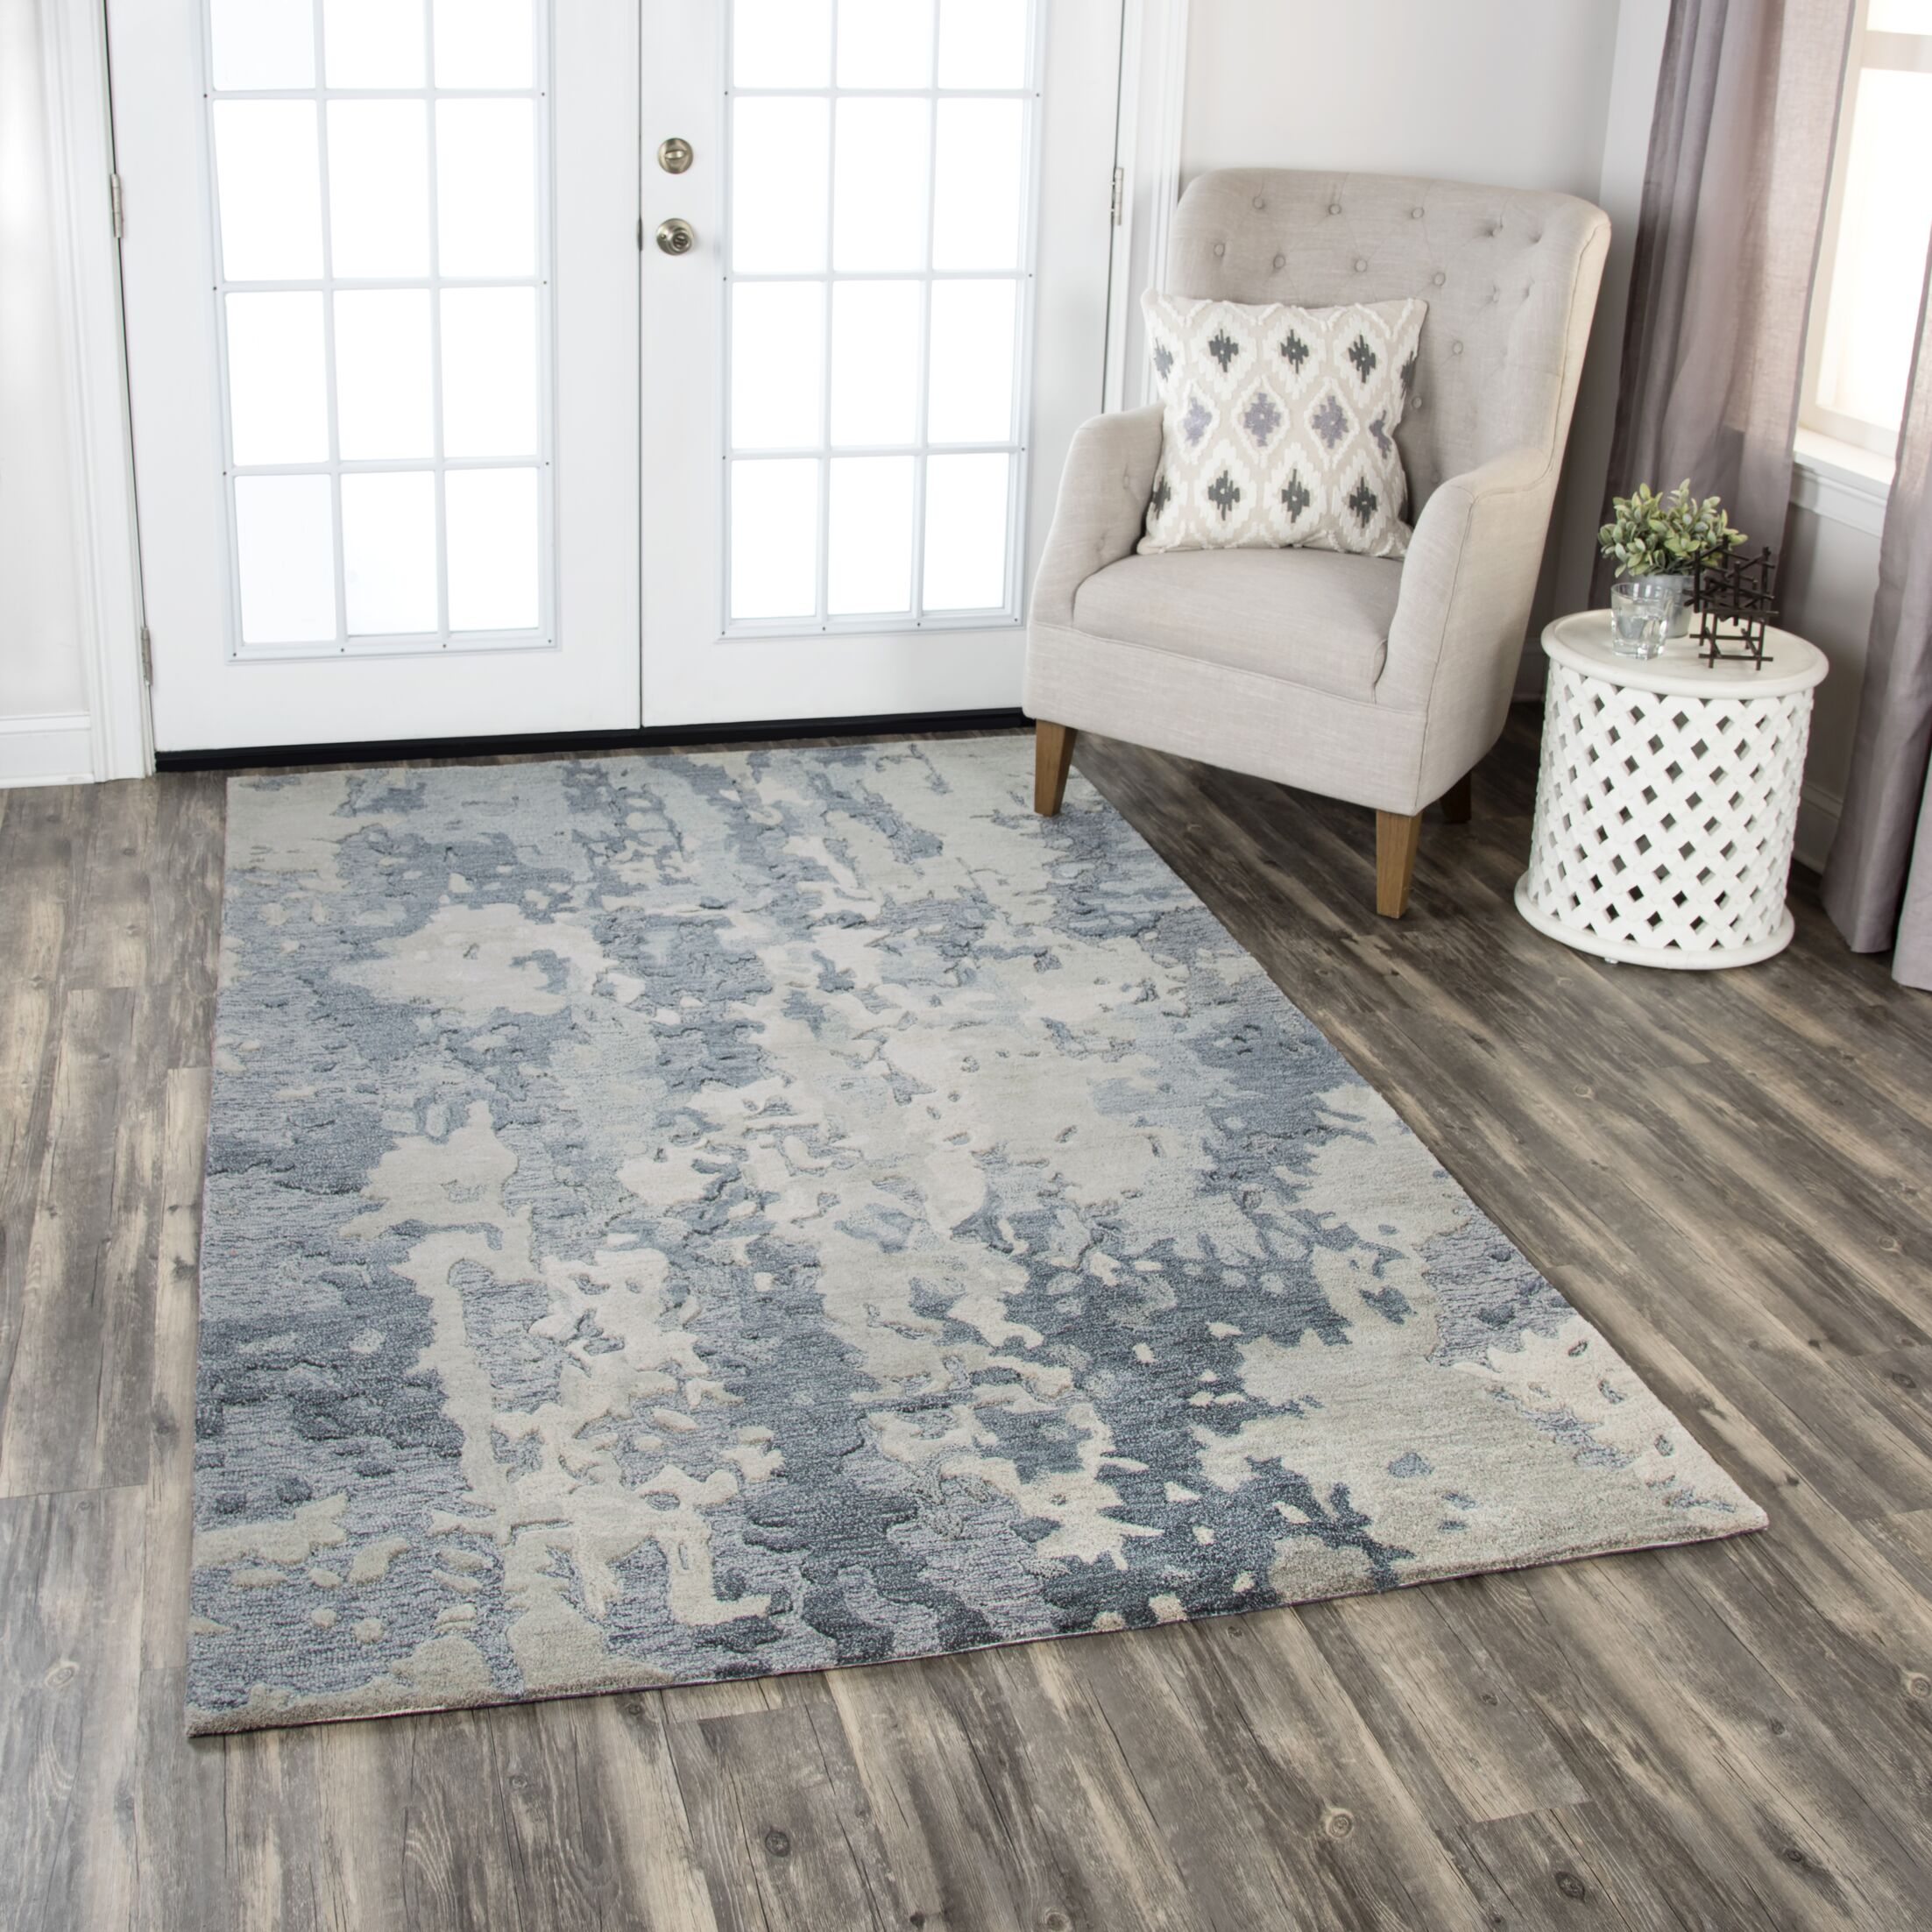 Greco Hand-Tufted Wool Gray Area Rug Rug Size: Rectangle 9' X 12'